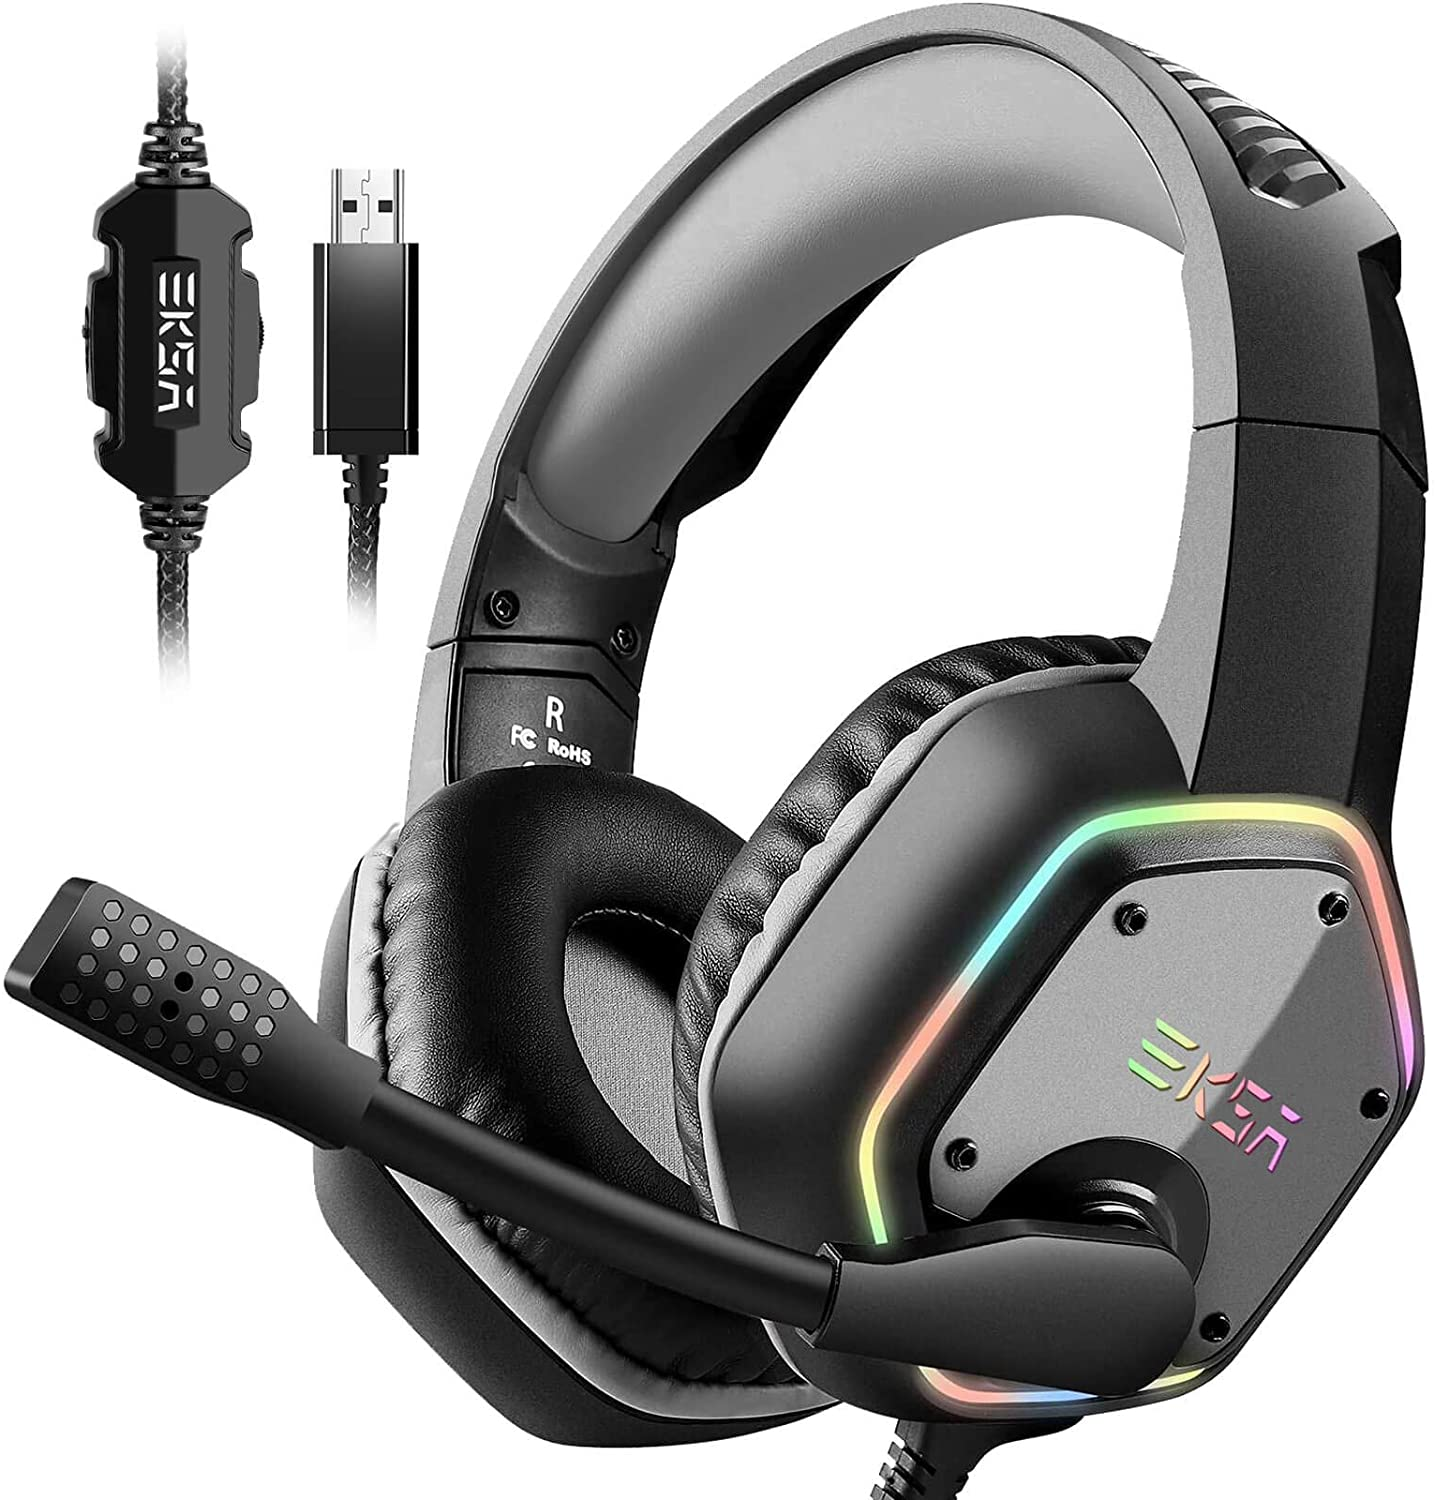 EKSA USB Gaming Headset for PC - Computer Headphones with 7.1 Surround Sound Stereo Noise Canceling Mic/Microphone RGB Light - Gaming Headphones for PS4 Console Laptop